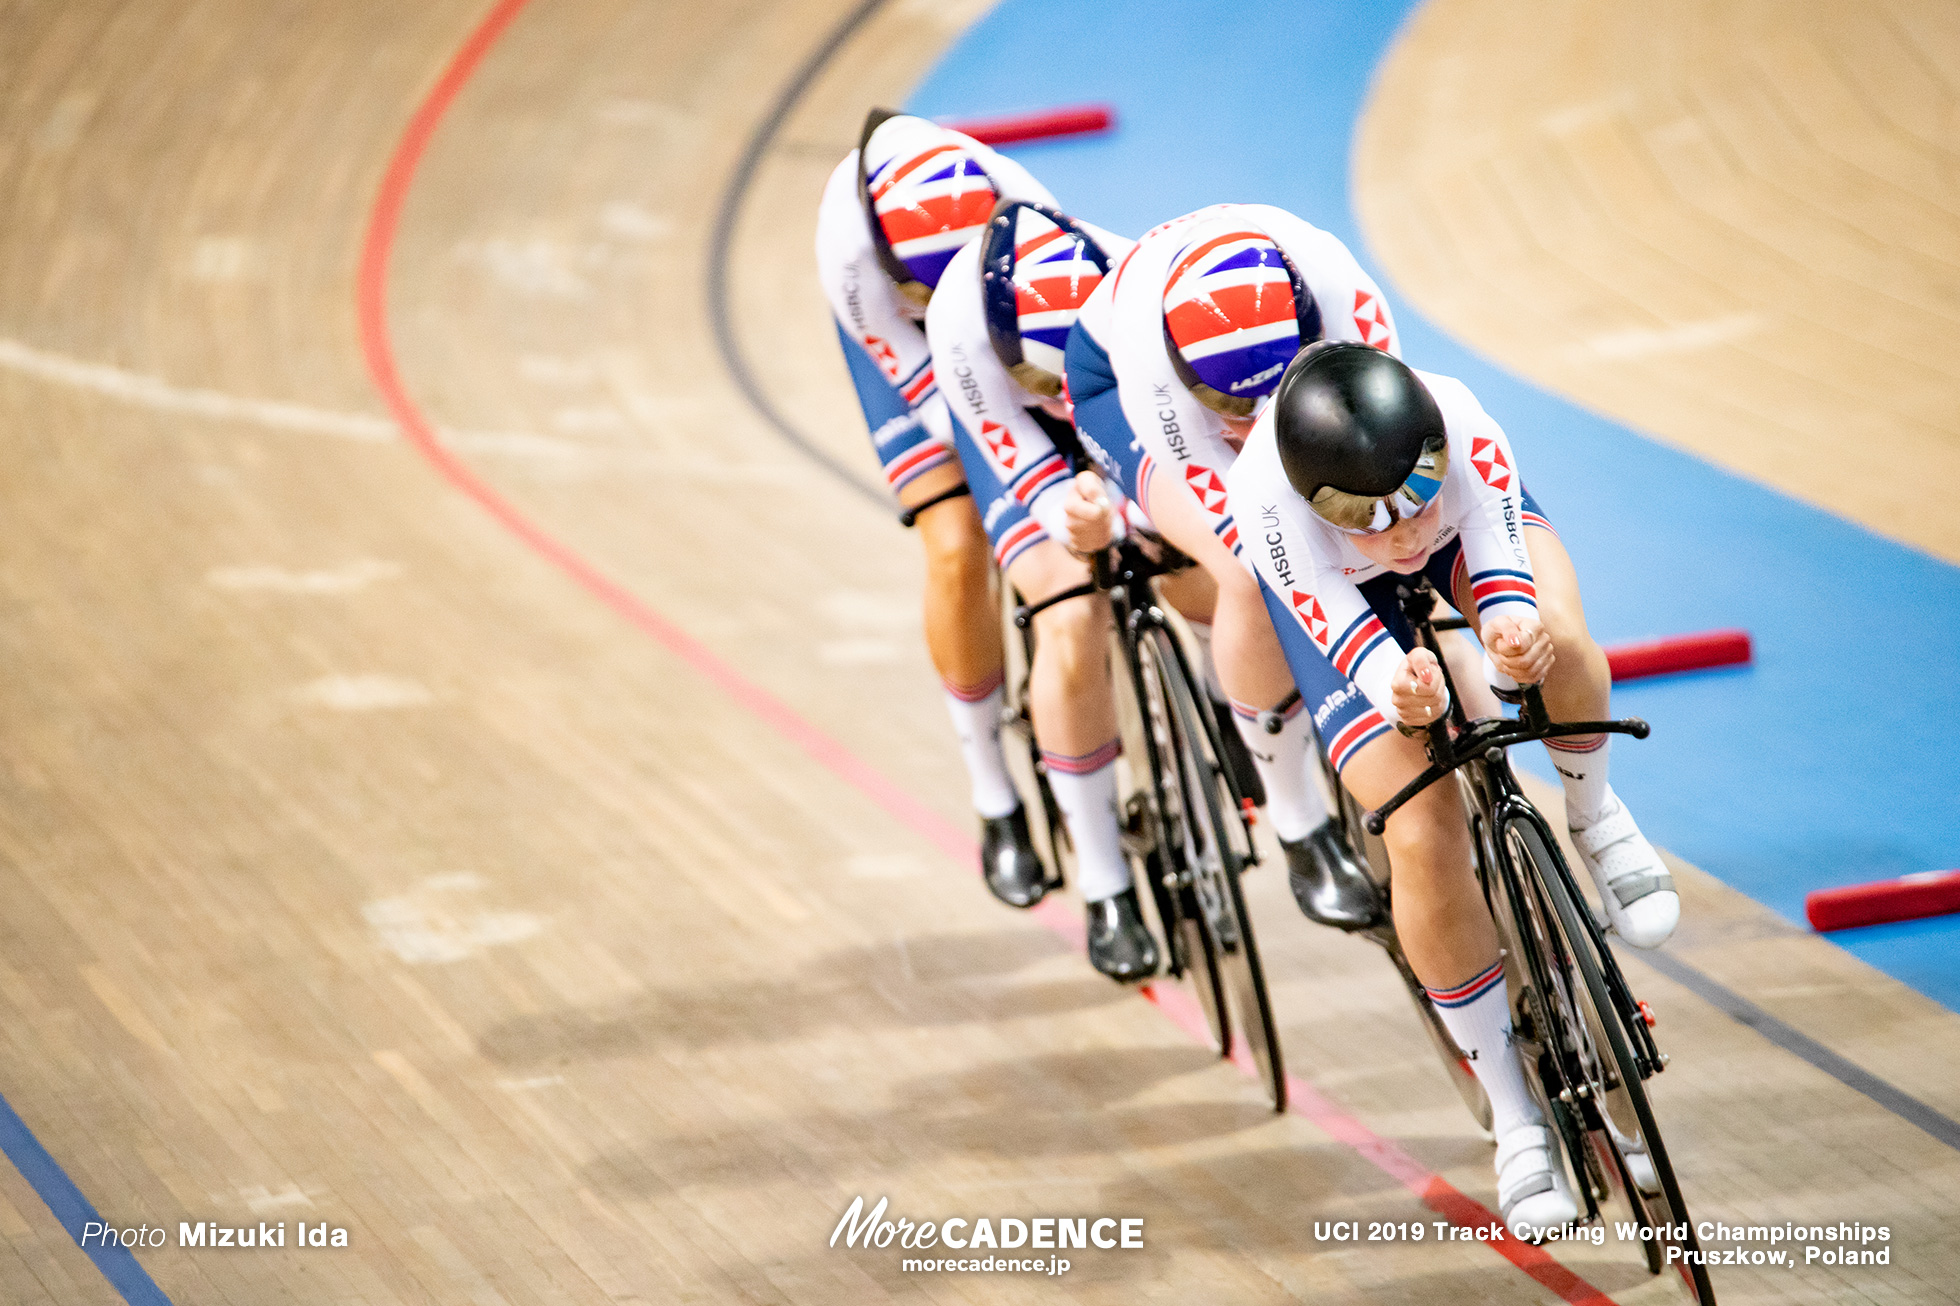 Women's Team Pursuit Final / 2019 Track Cycling World Championships Pruszków, Poland